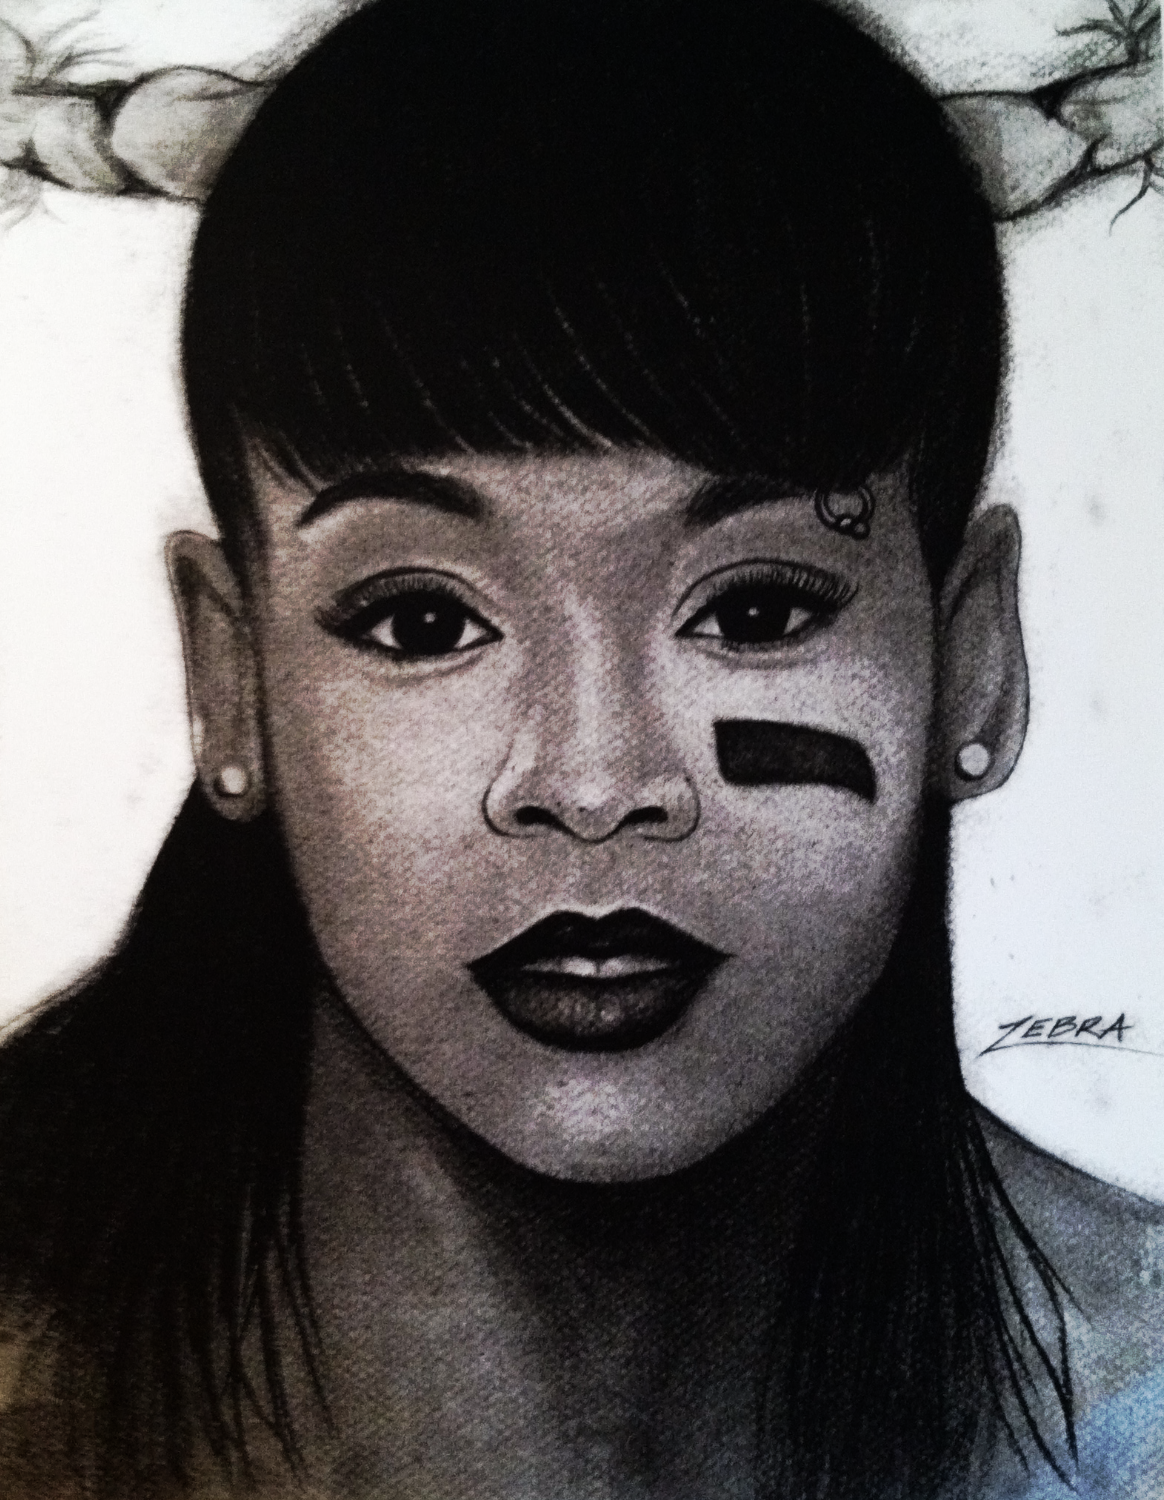 Lisa (Left Eye) Lopes